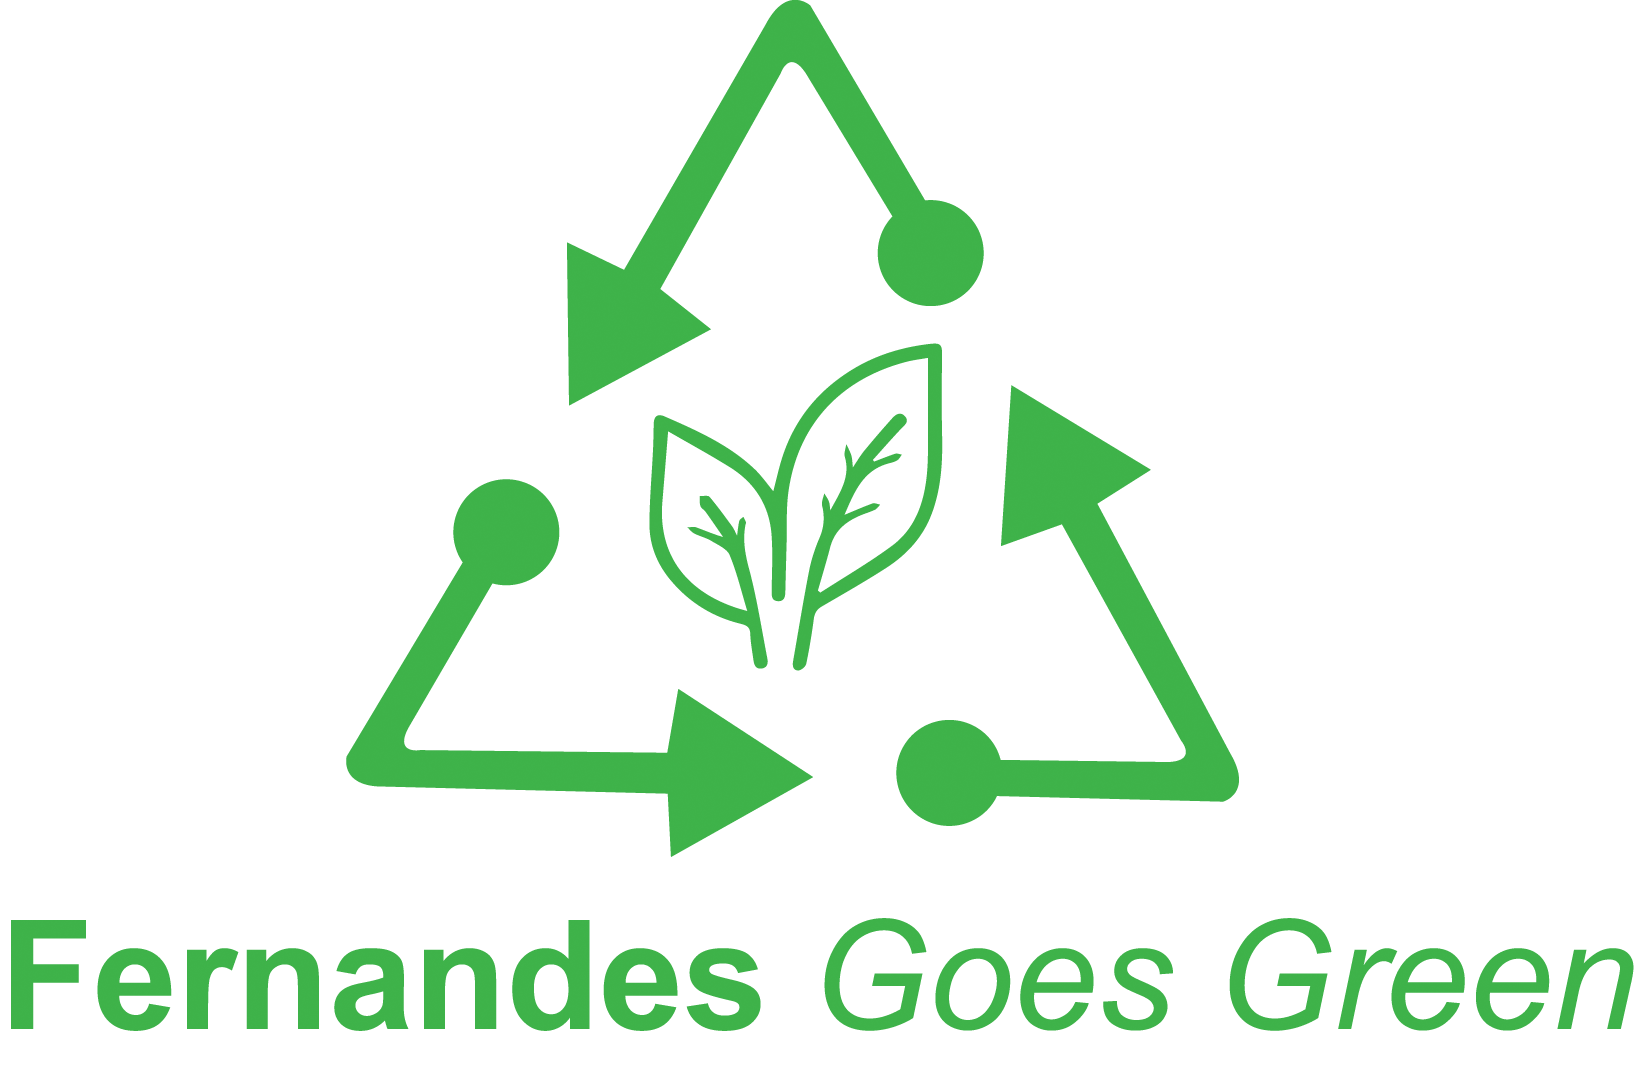 Fernandes Goes Green logo